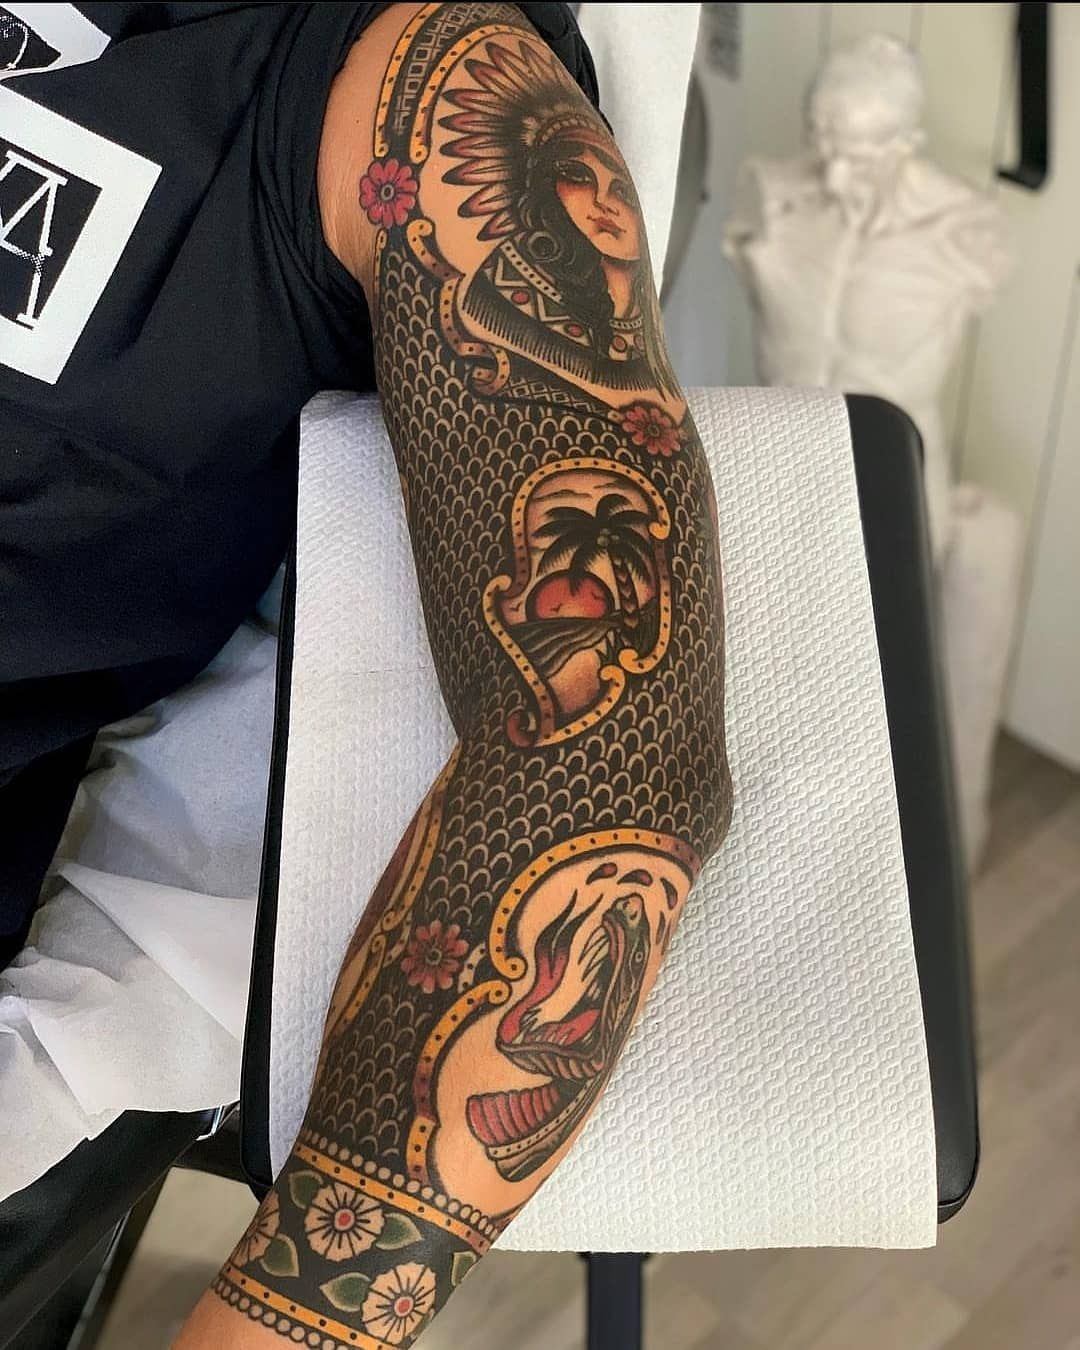 Old school tattoos on instagram rate this sleeve from 1